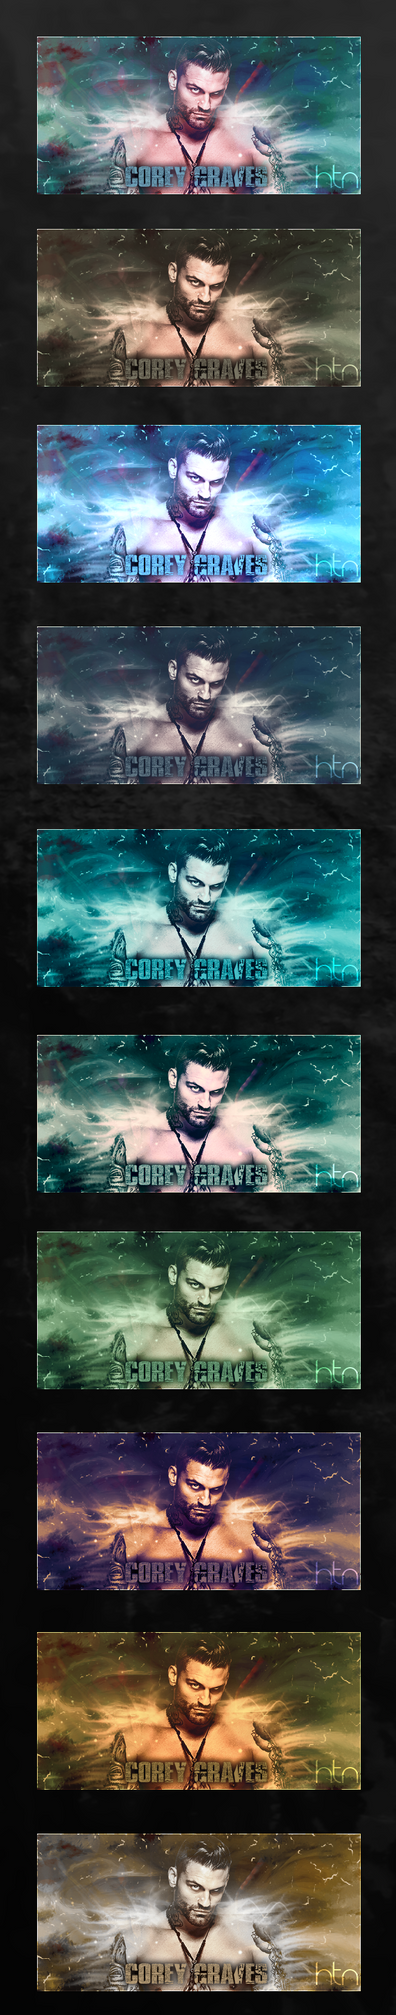 Bunch Of Corey Graves Signatures by HTN4ever